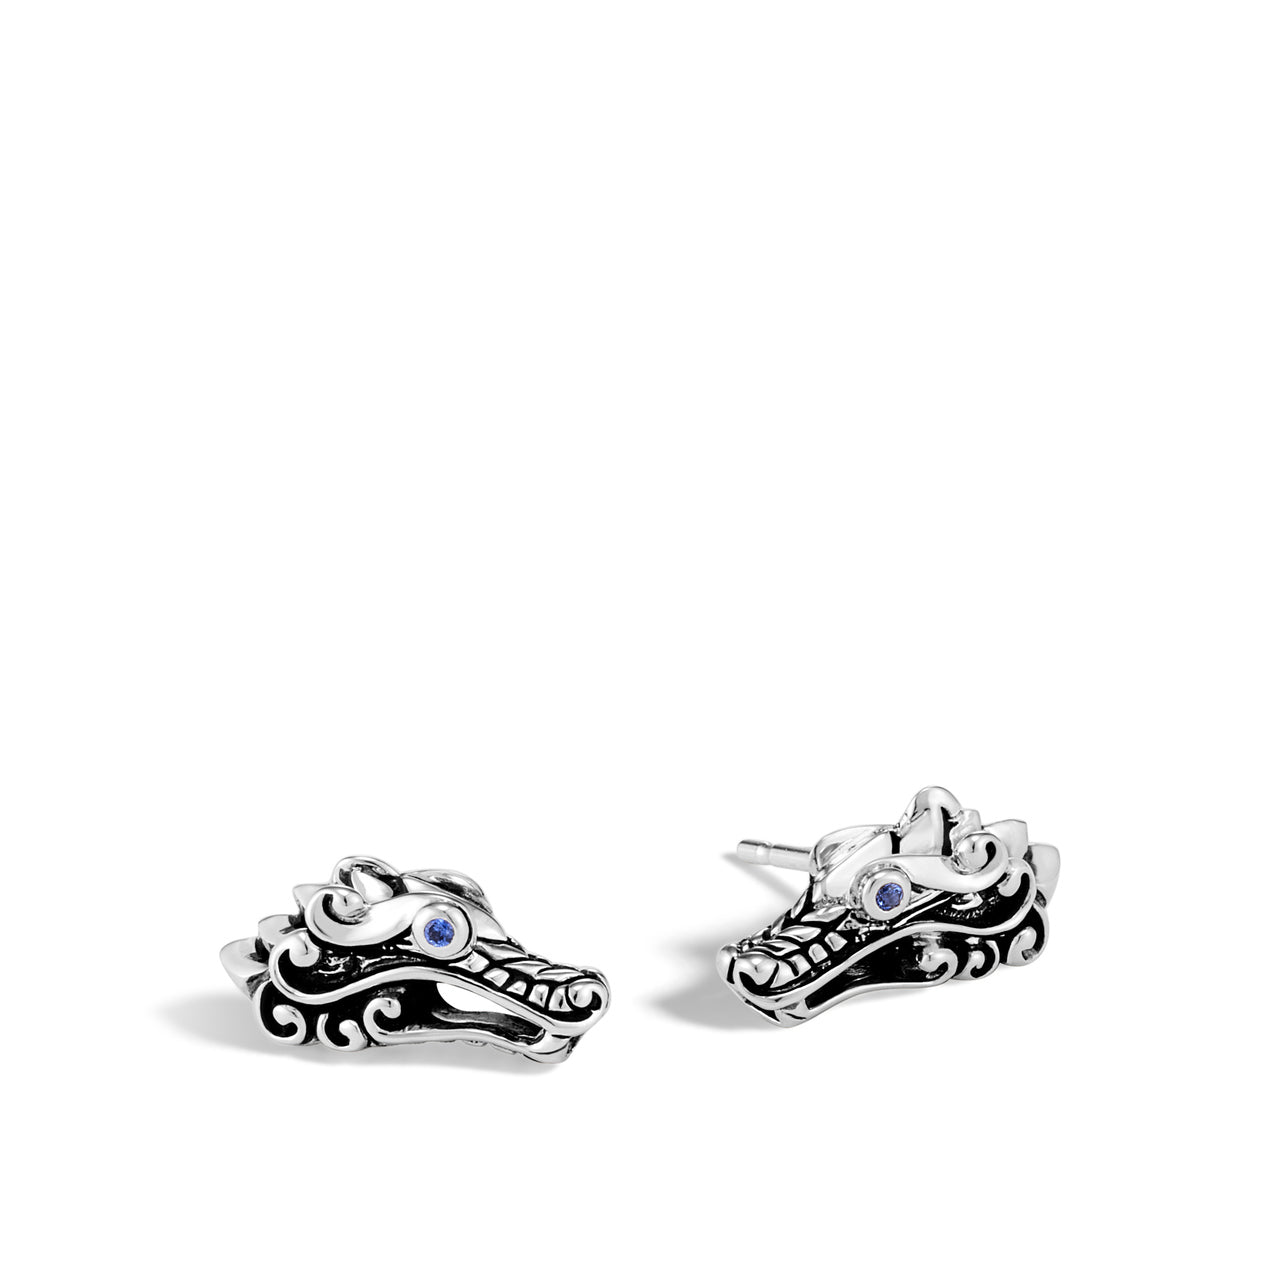 John Hardy Legends Naga Sterling Silver Stud Earrings with Blue Sapphire Eyes